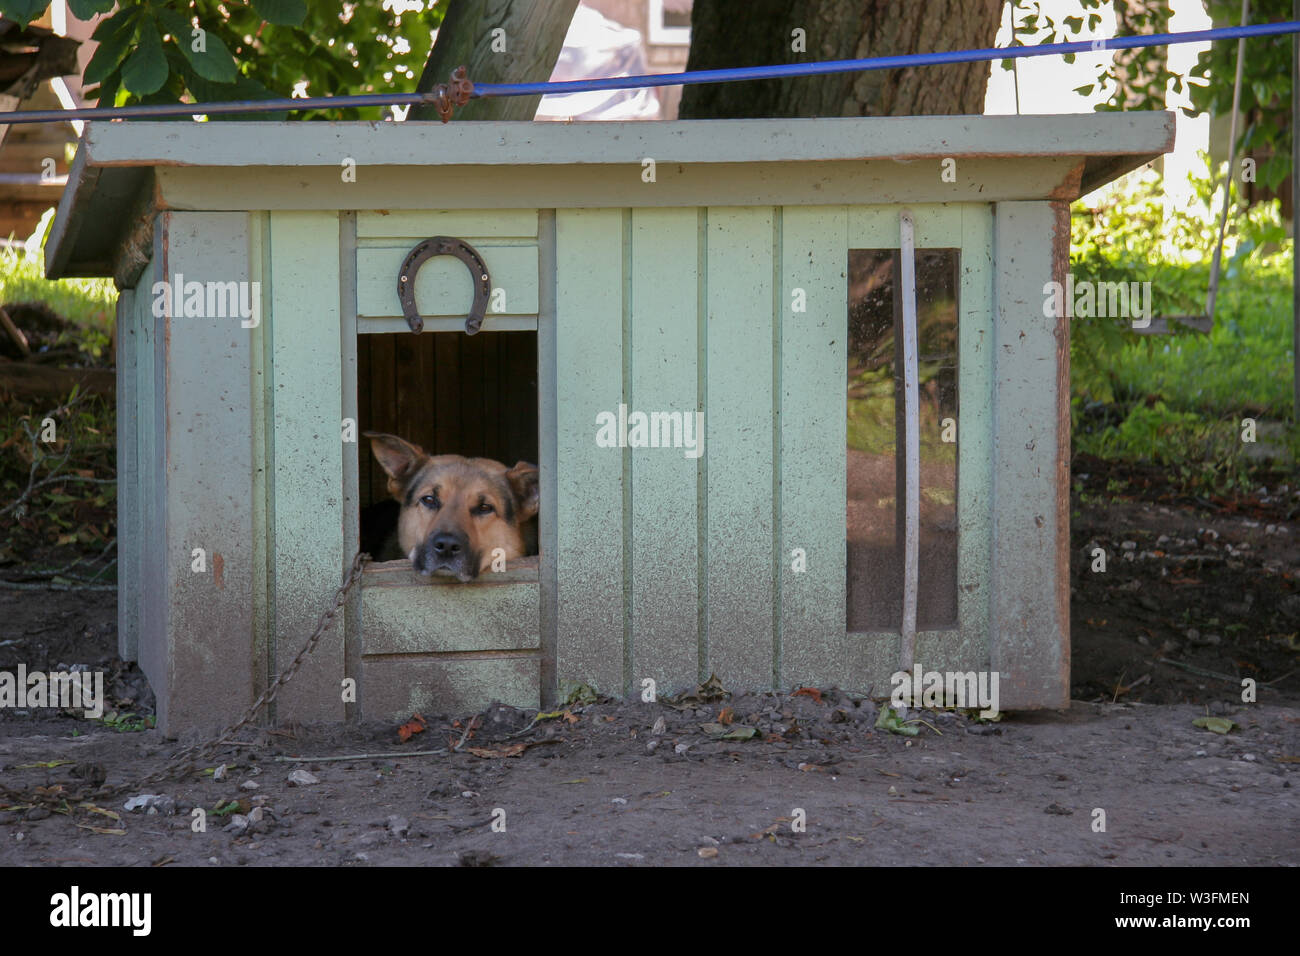 A sad shepherd dog sits in a booth on a chain and looks into the camera. Close-up. Horseshoe nailed on the booth. The booth is green and dirty. - Stock Image